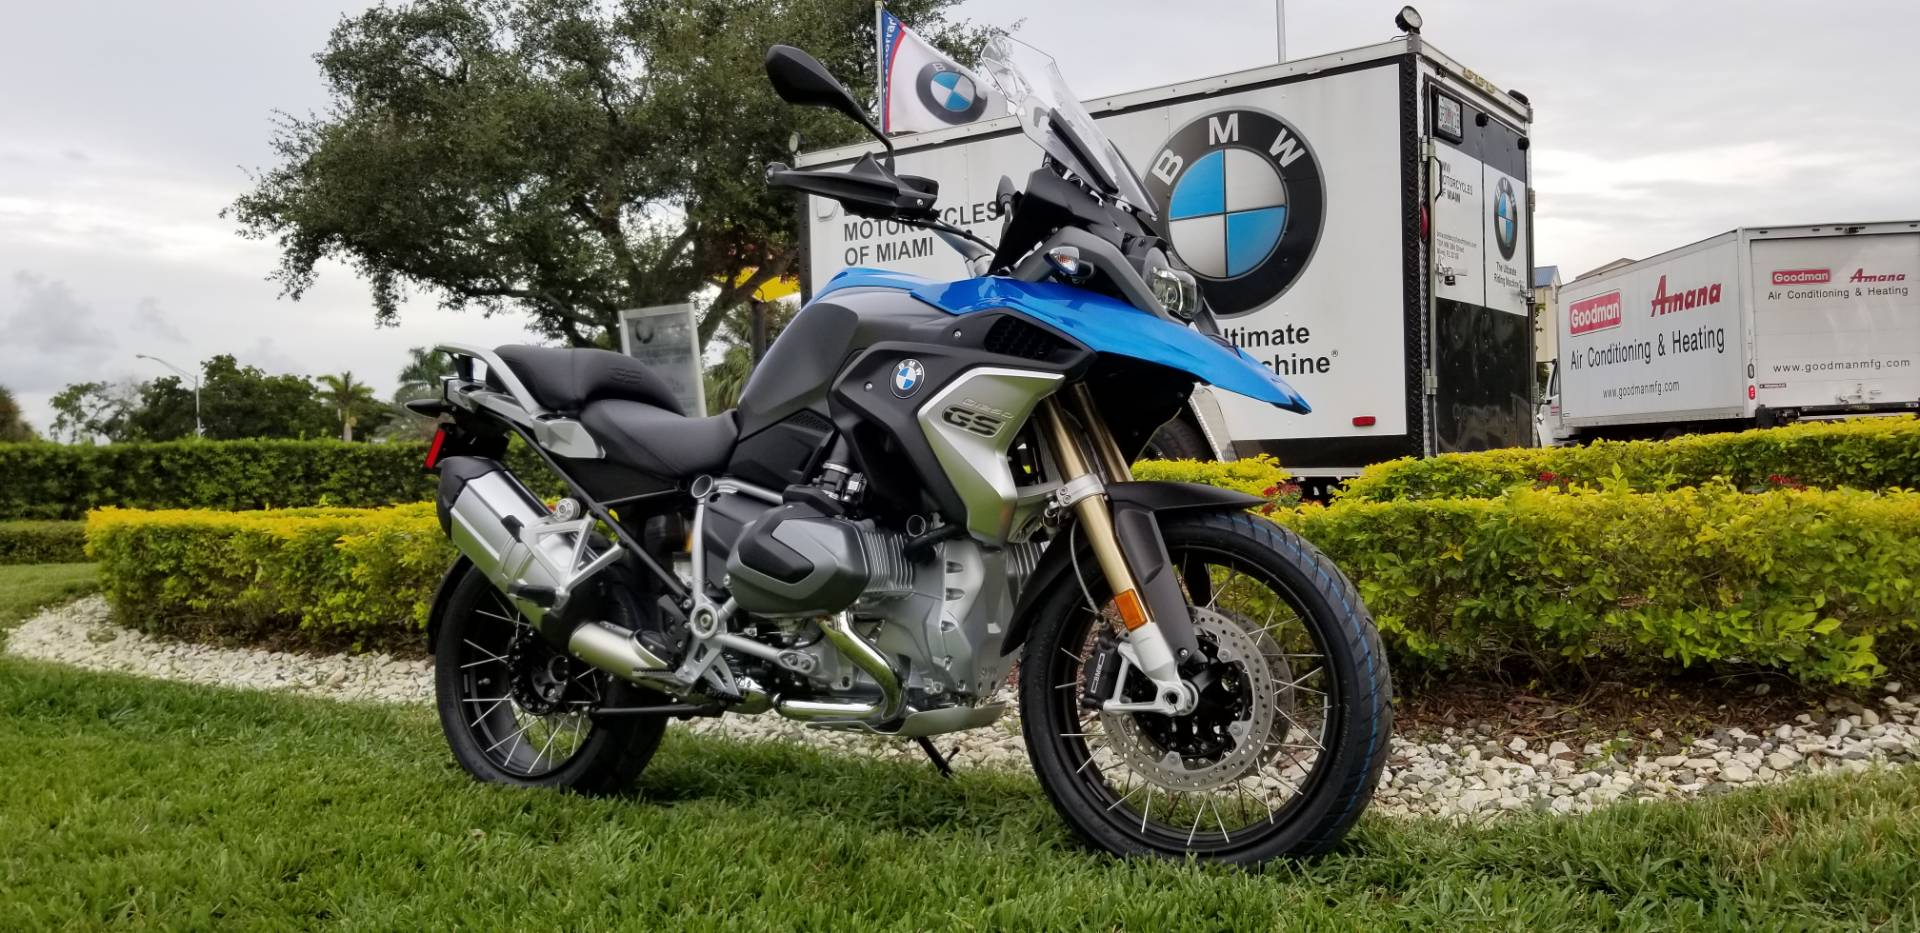 New 2019 BMW R 1250 GS for sale, BMW for sale R 1250GS, BMW Motorcycle R1250GS, new BMW 1250GS, R1250GS, BMW. BMW Motorcycles of Miami, Motorcycles of Miami - Photo 38